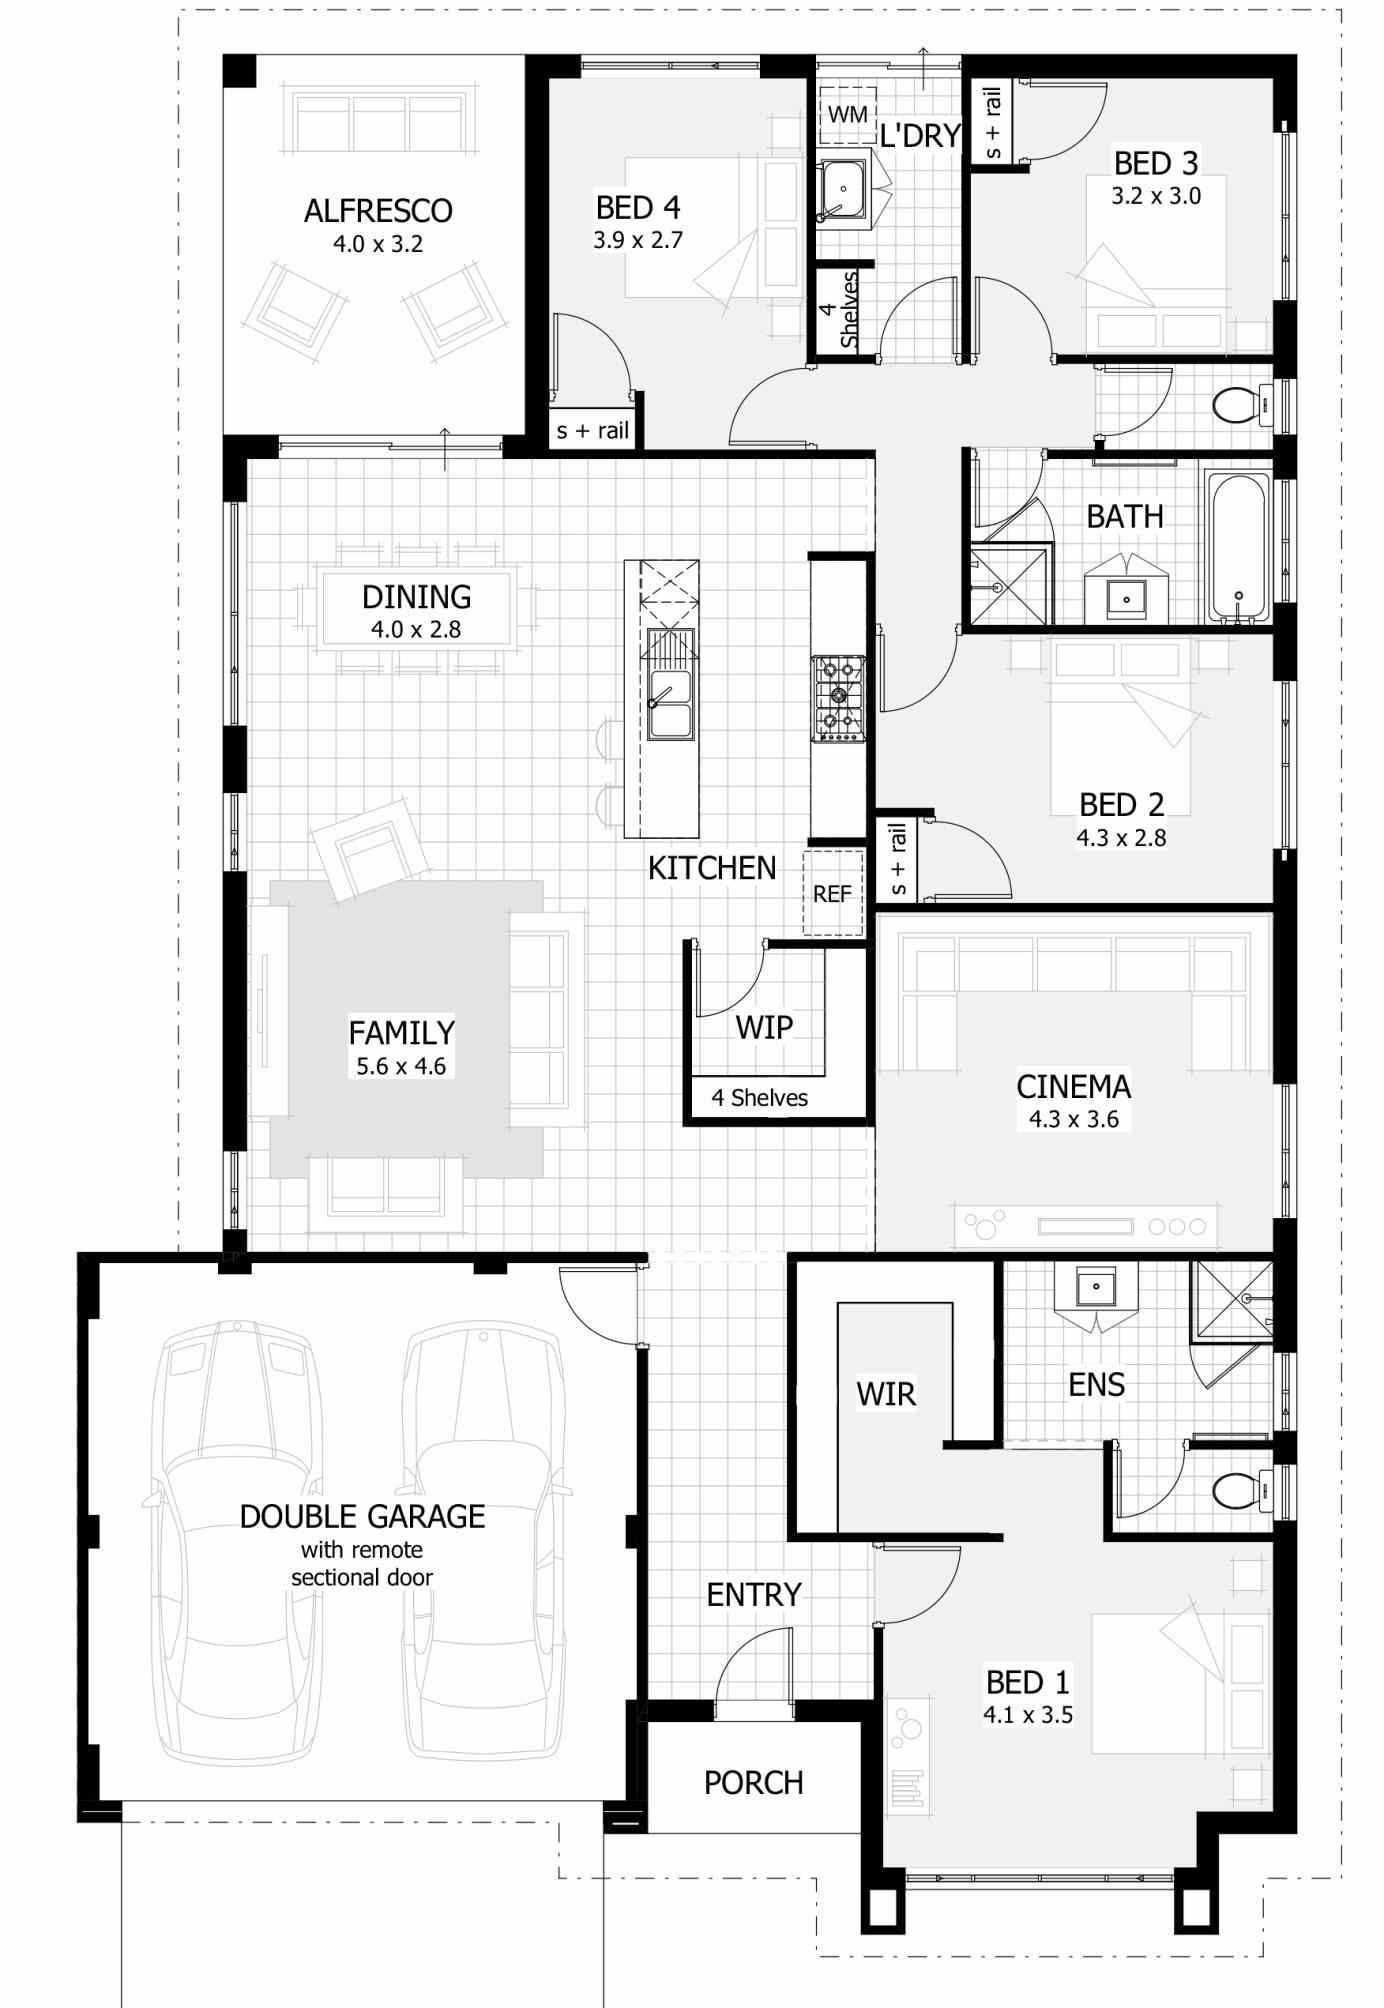 21 Trendy Floor Plan 2 Story Australia To Not Miss Floor Plans 2 Story House Plans Australia Australian House Plans